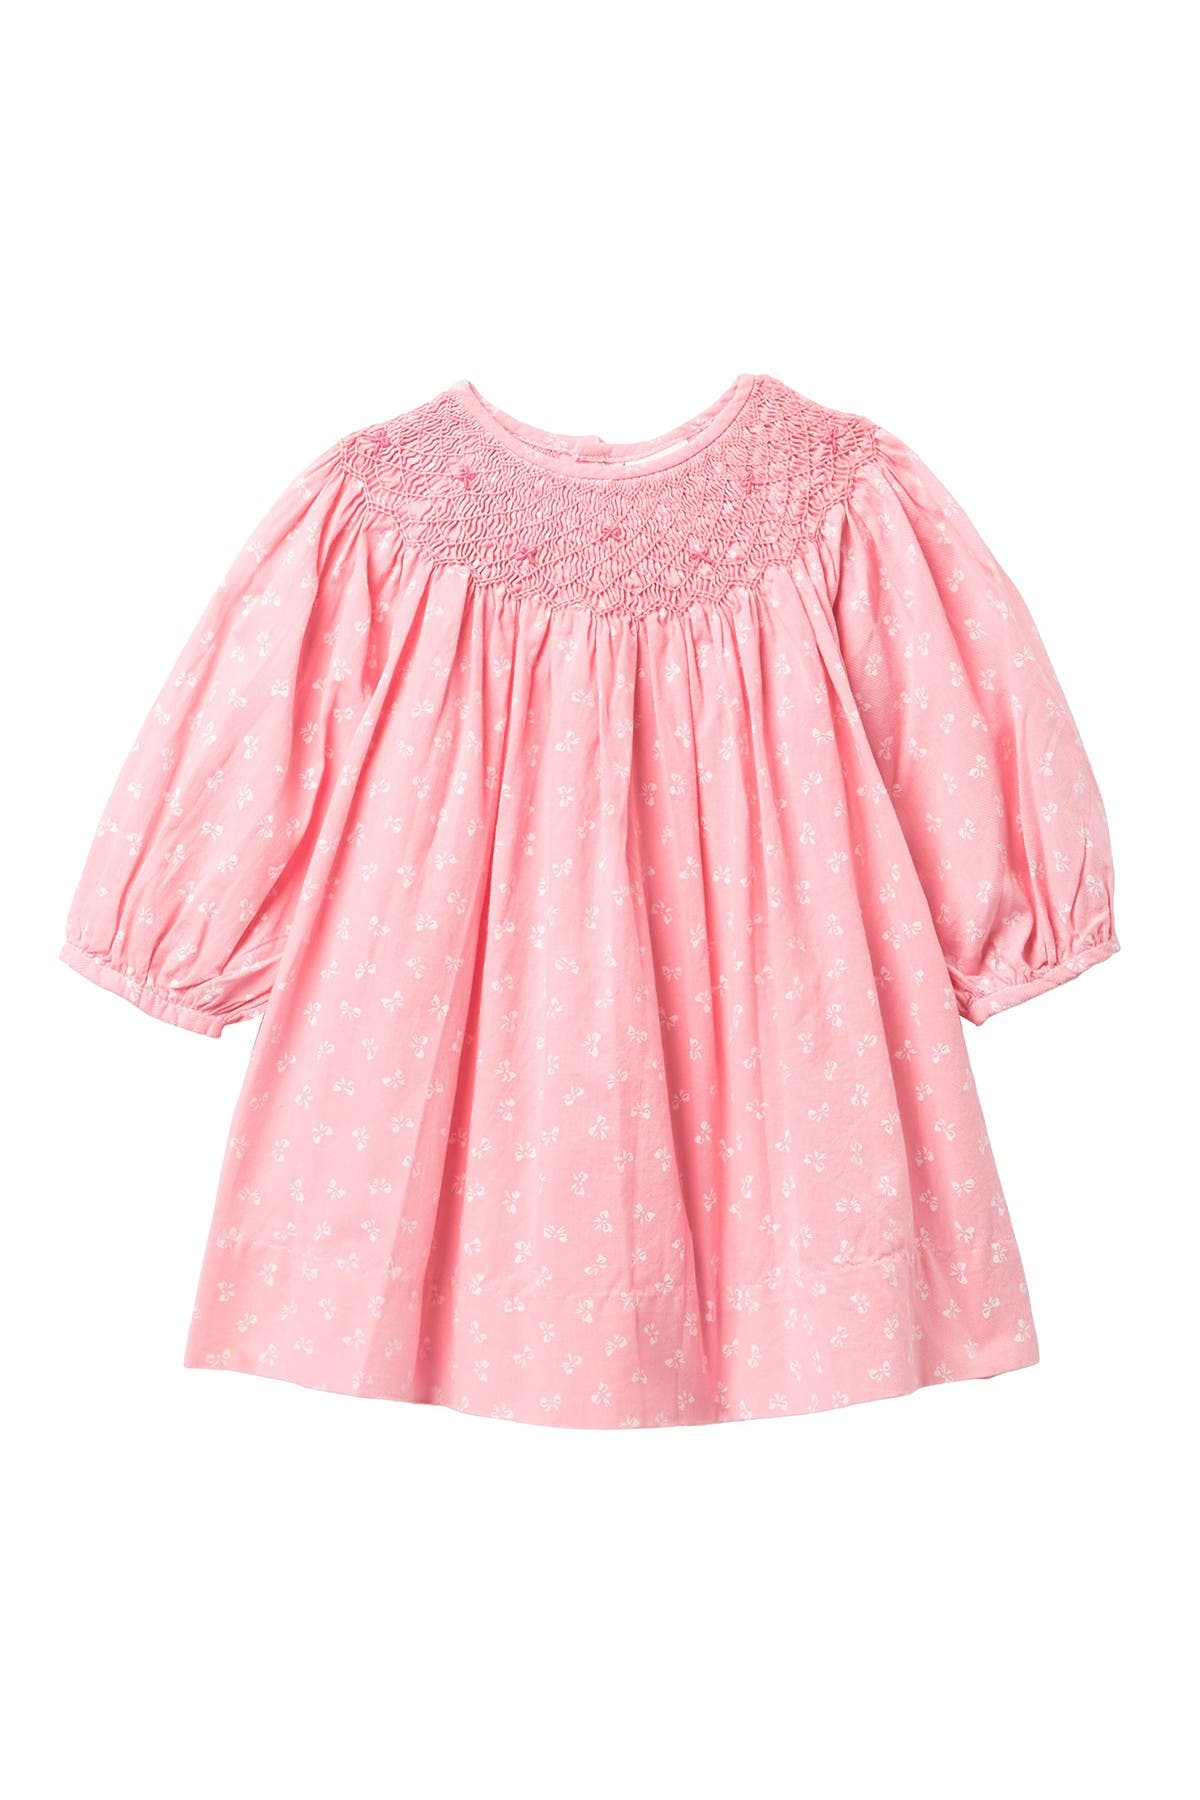 Image of Carriage Boutique Bow Tie Dress (Baby Girls)